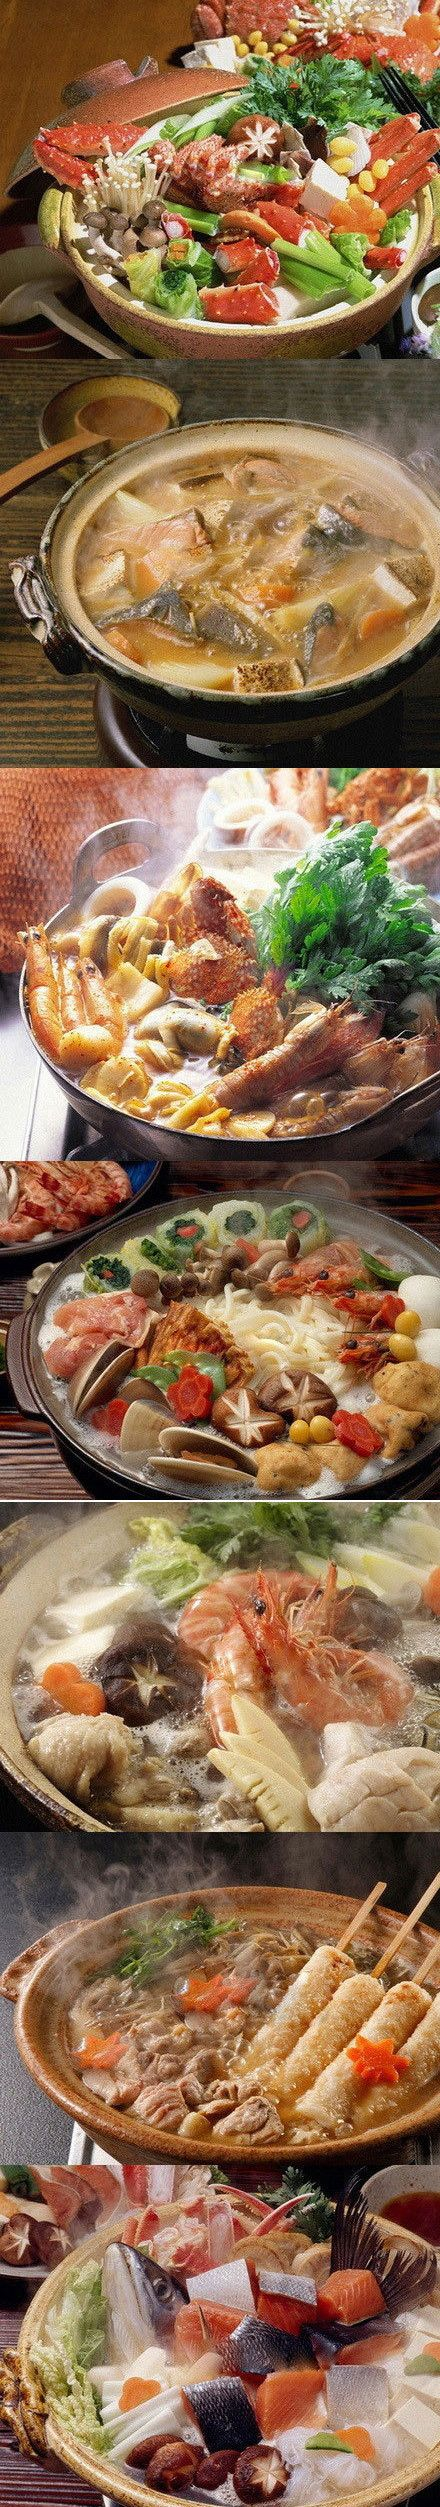 Craving Shabu shabu..where can I find  it here in the desert?